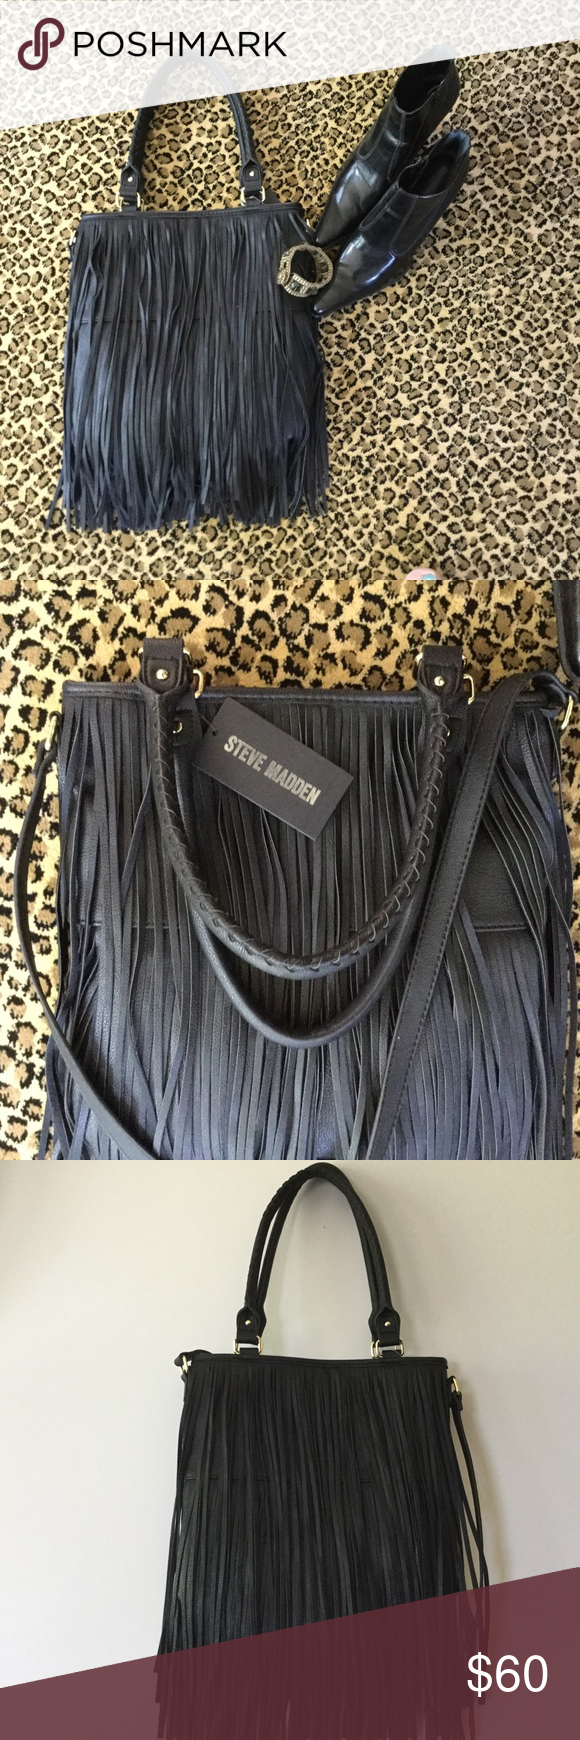 Steve Madden Tote with Fringe Steve Madden Cross Body Tote with Fringe- 11x13 without Fringe-1 Inside zipper pocket, 2 inside slip pockets- Dual Handle Steve Madden Bags